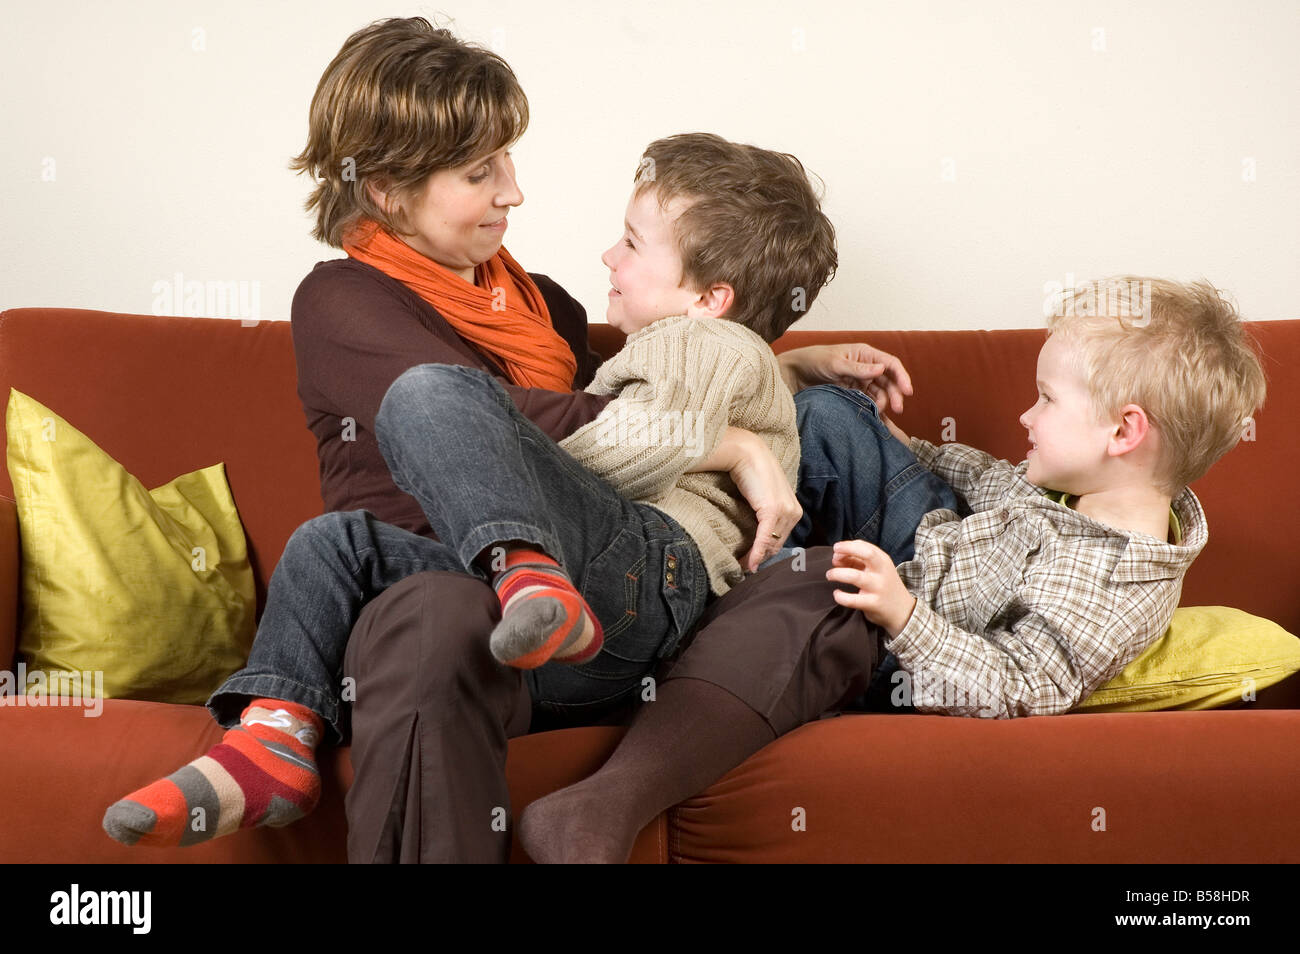 Family playing pranks on a couch - Stock Image